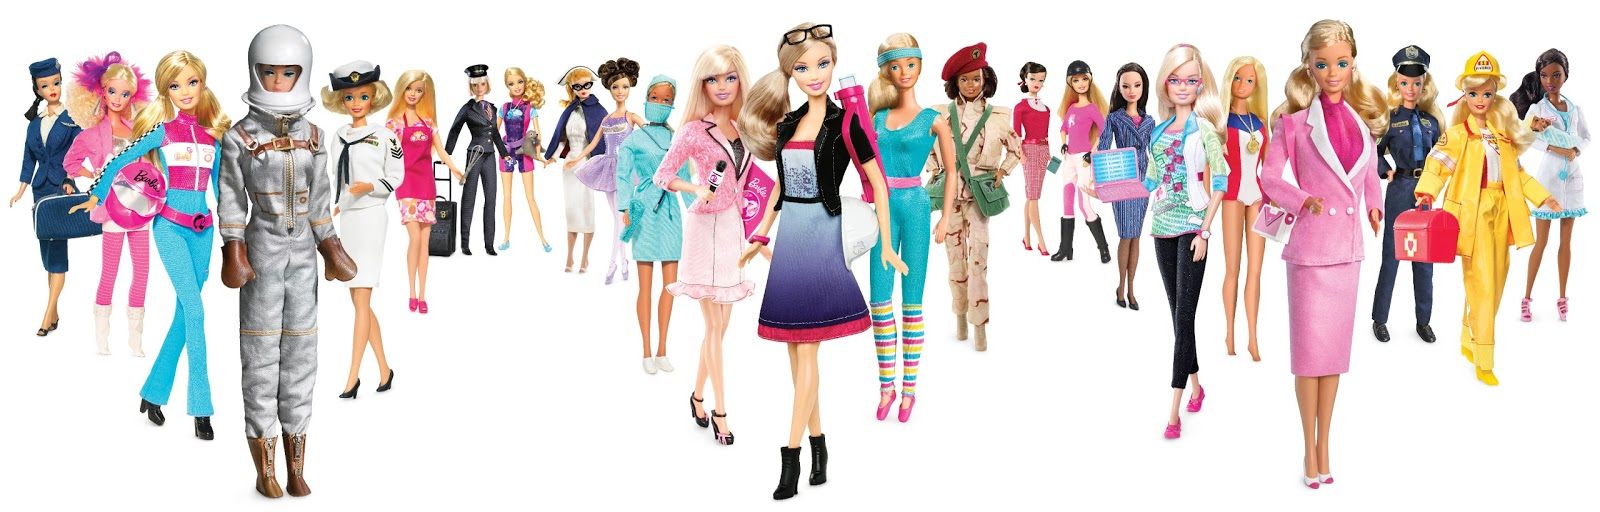 an analysis of barbie as the epitome of beauty in society America's foremost expert on criminal profiling provides his uniquely gripping analysis  liysa and chris northon seemed the epitome  but also helps society.